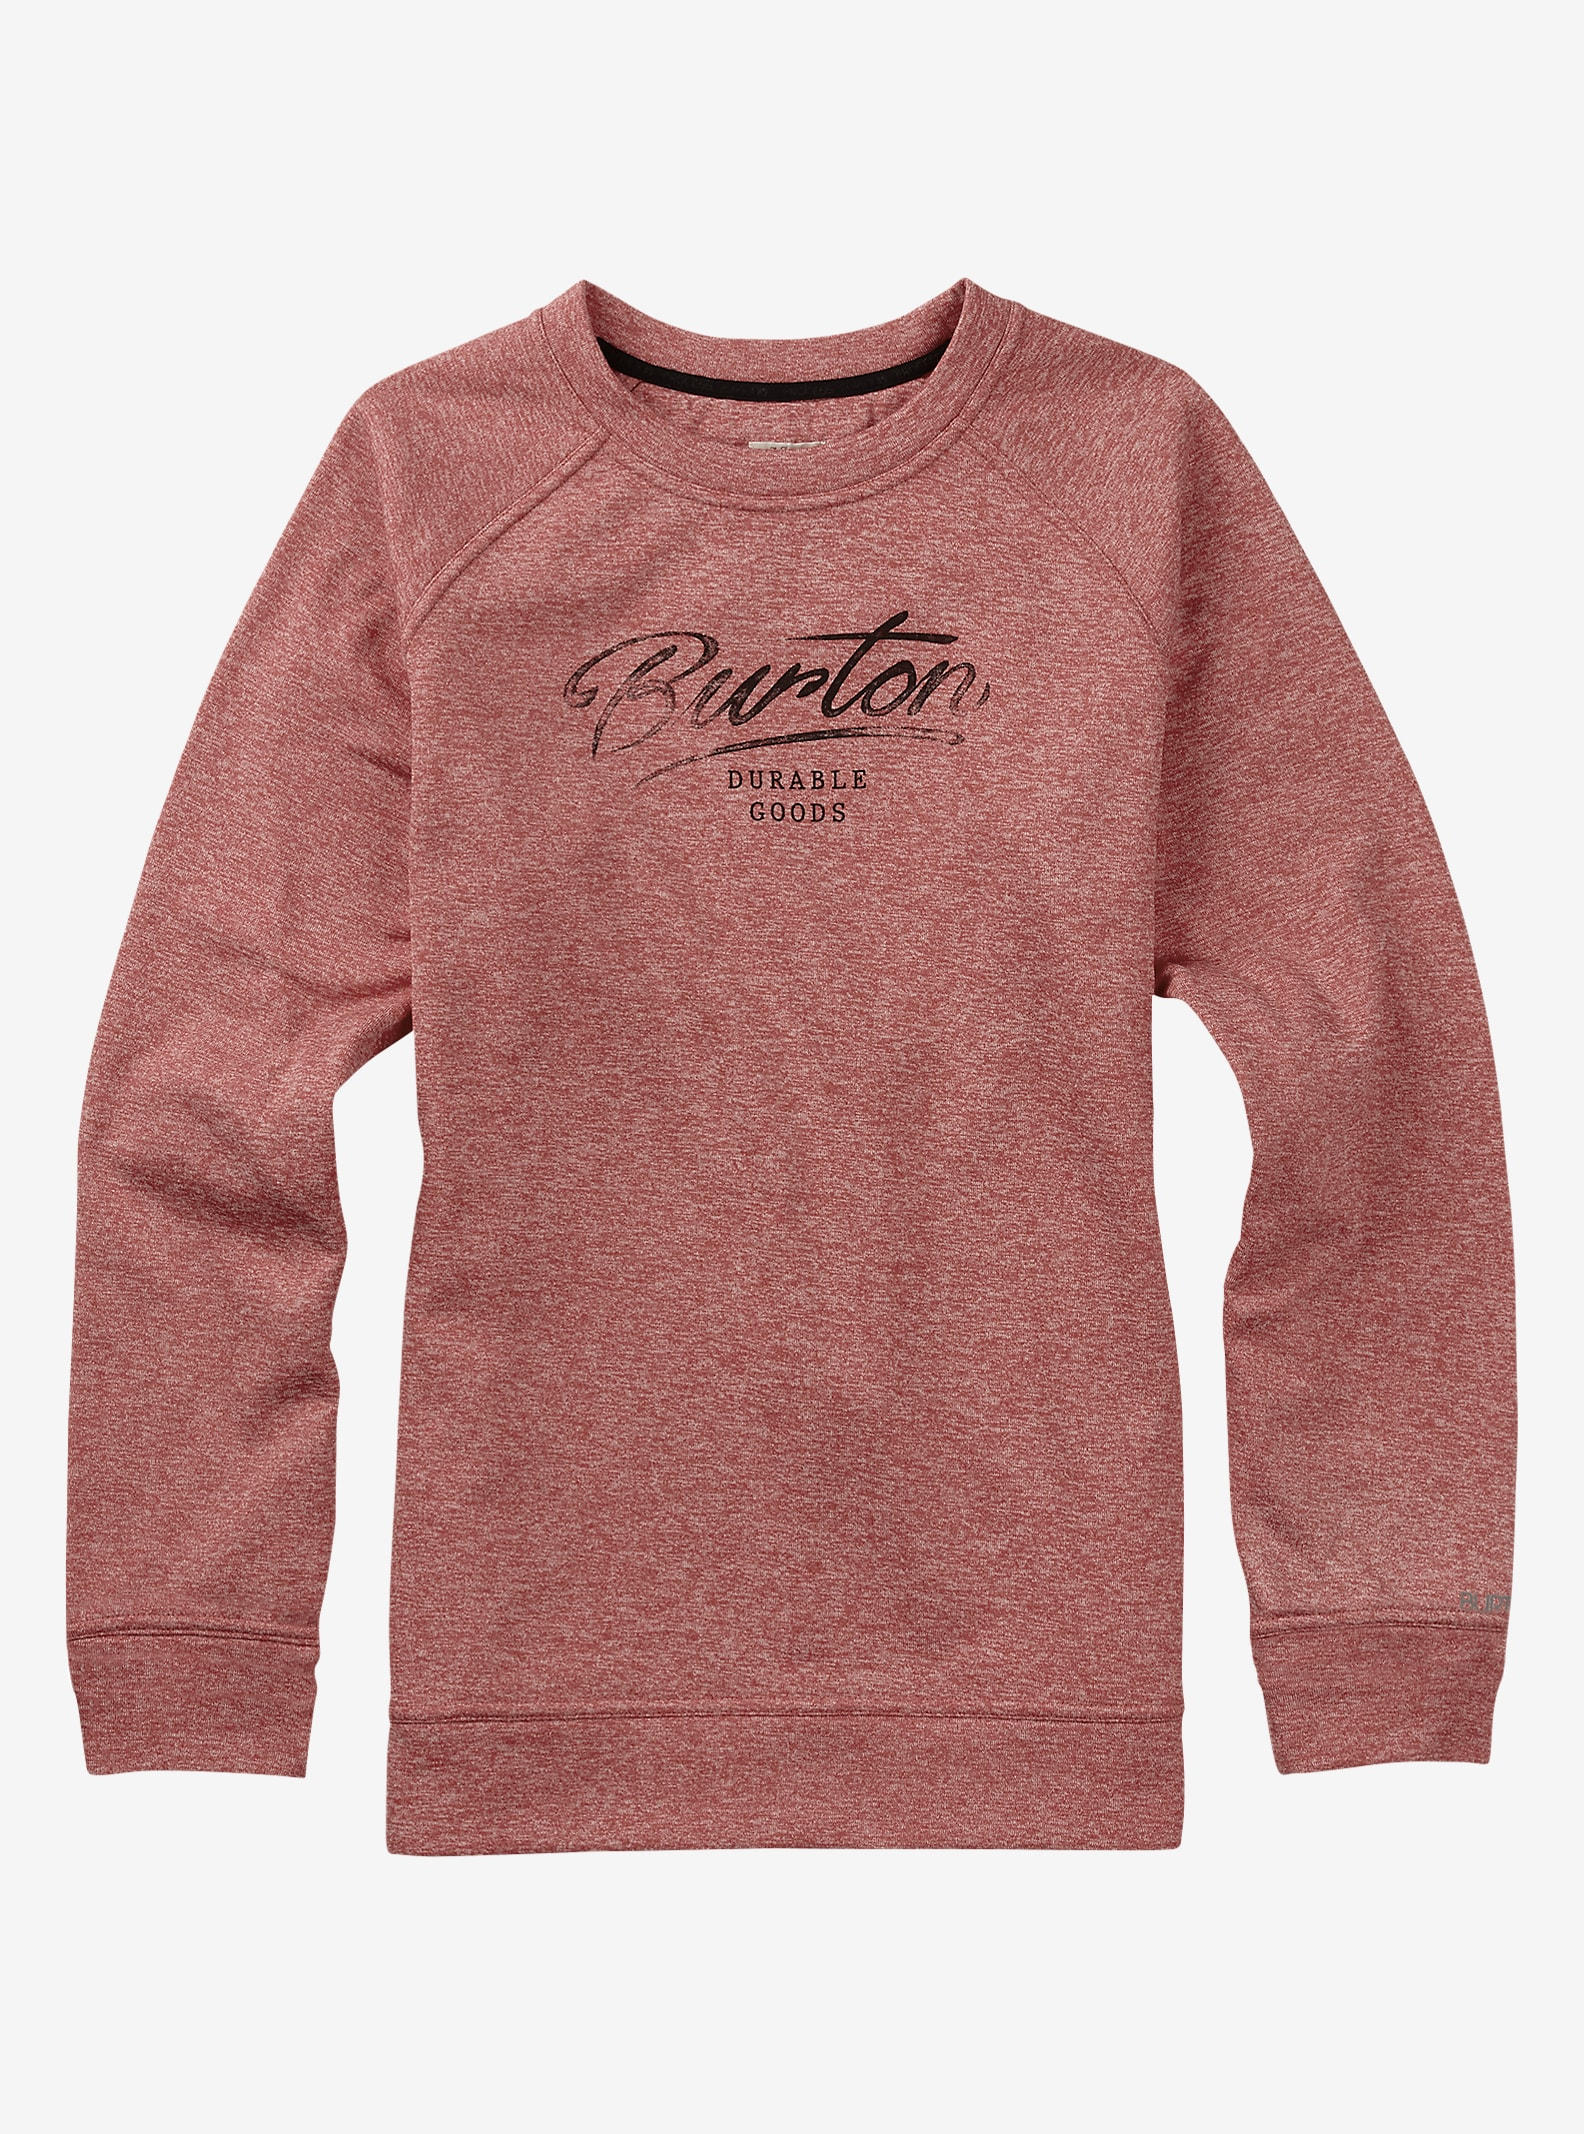 Burton Quartz Crew shown in Coral Heather